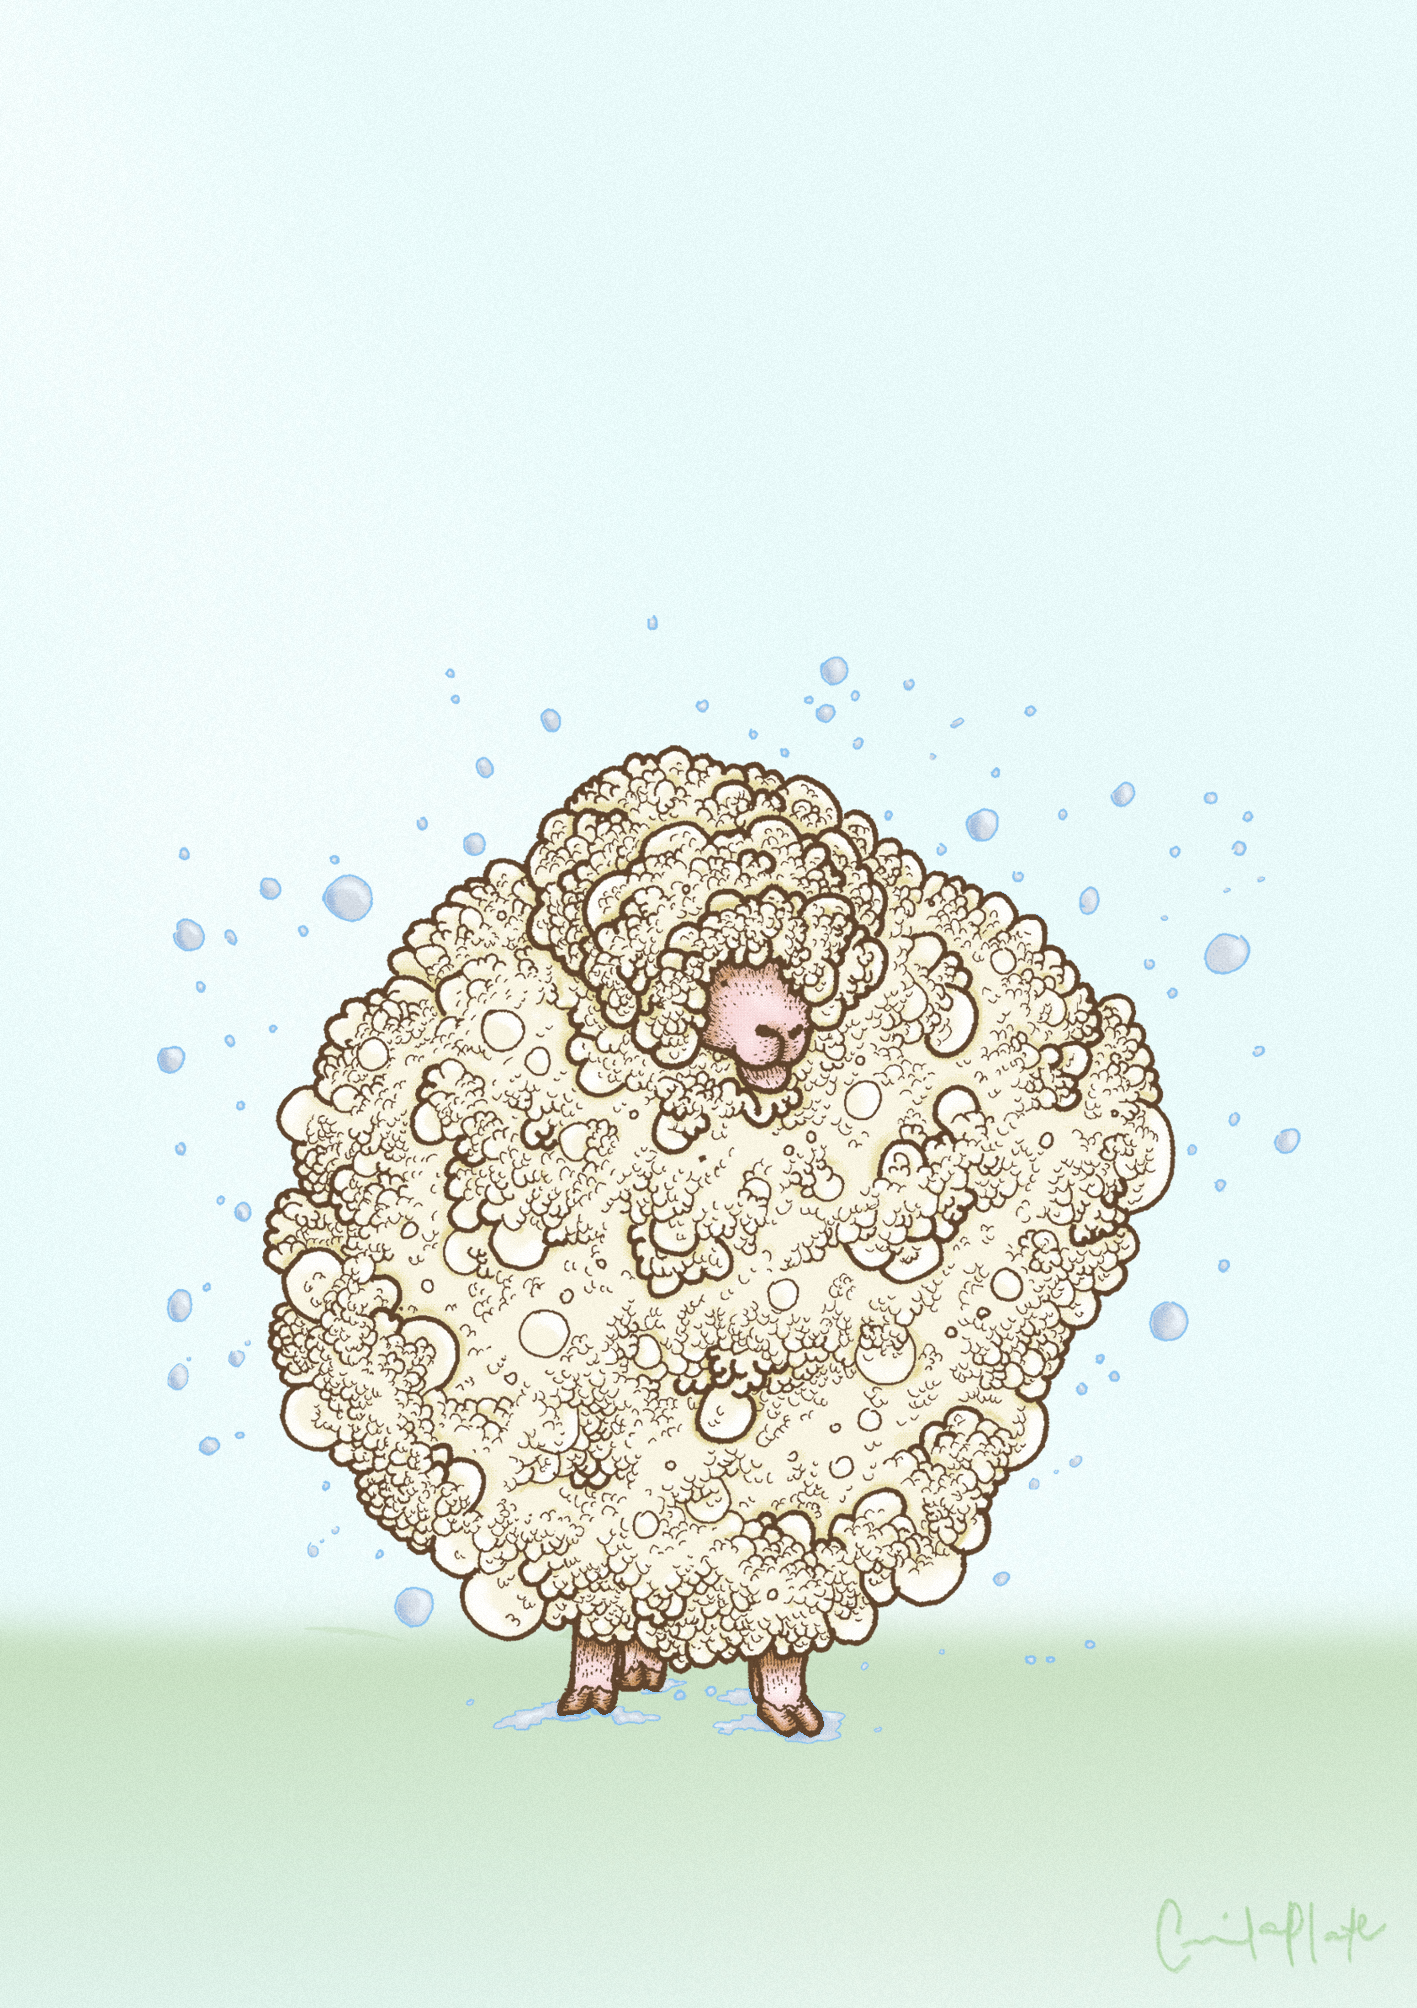 Bubble sheep.png